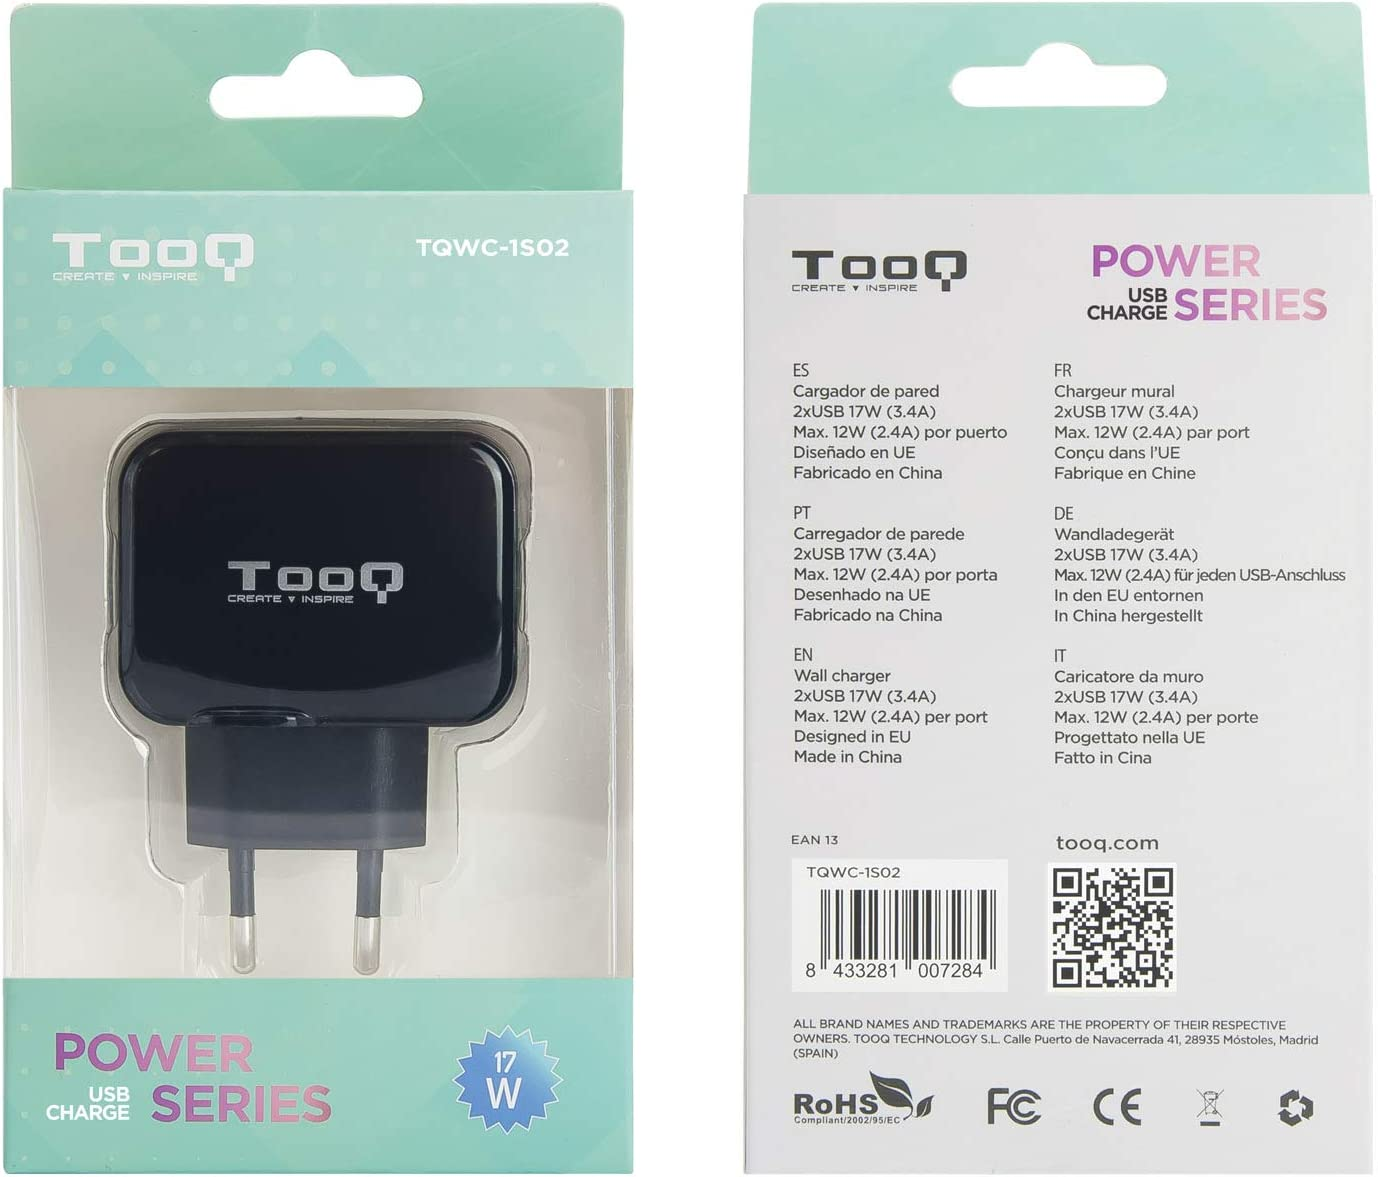 Tooq Tqwc 1s02 Charger With 2x Usb With Airpower Computers Accessories